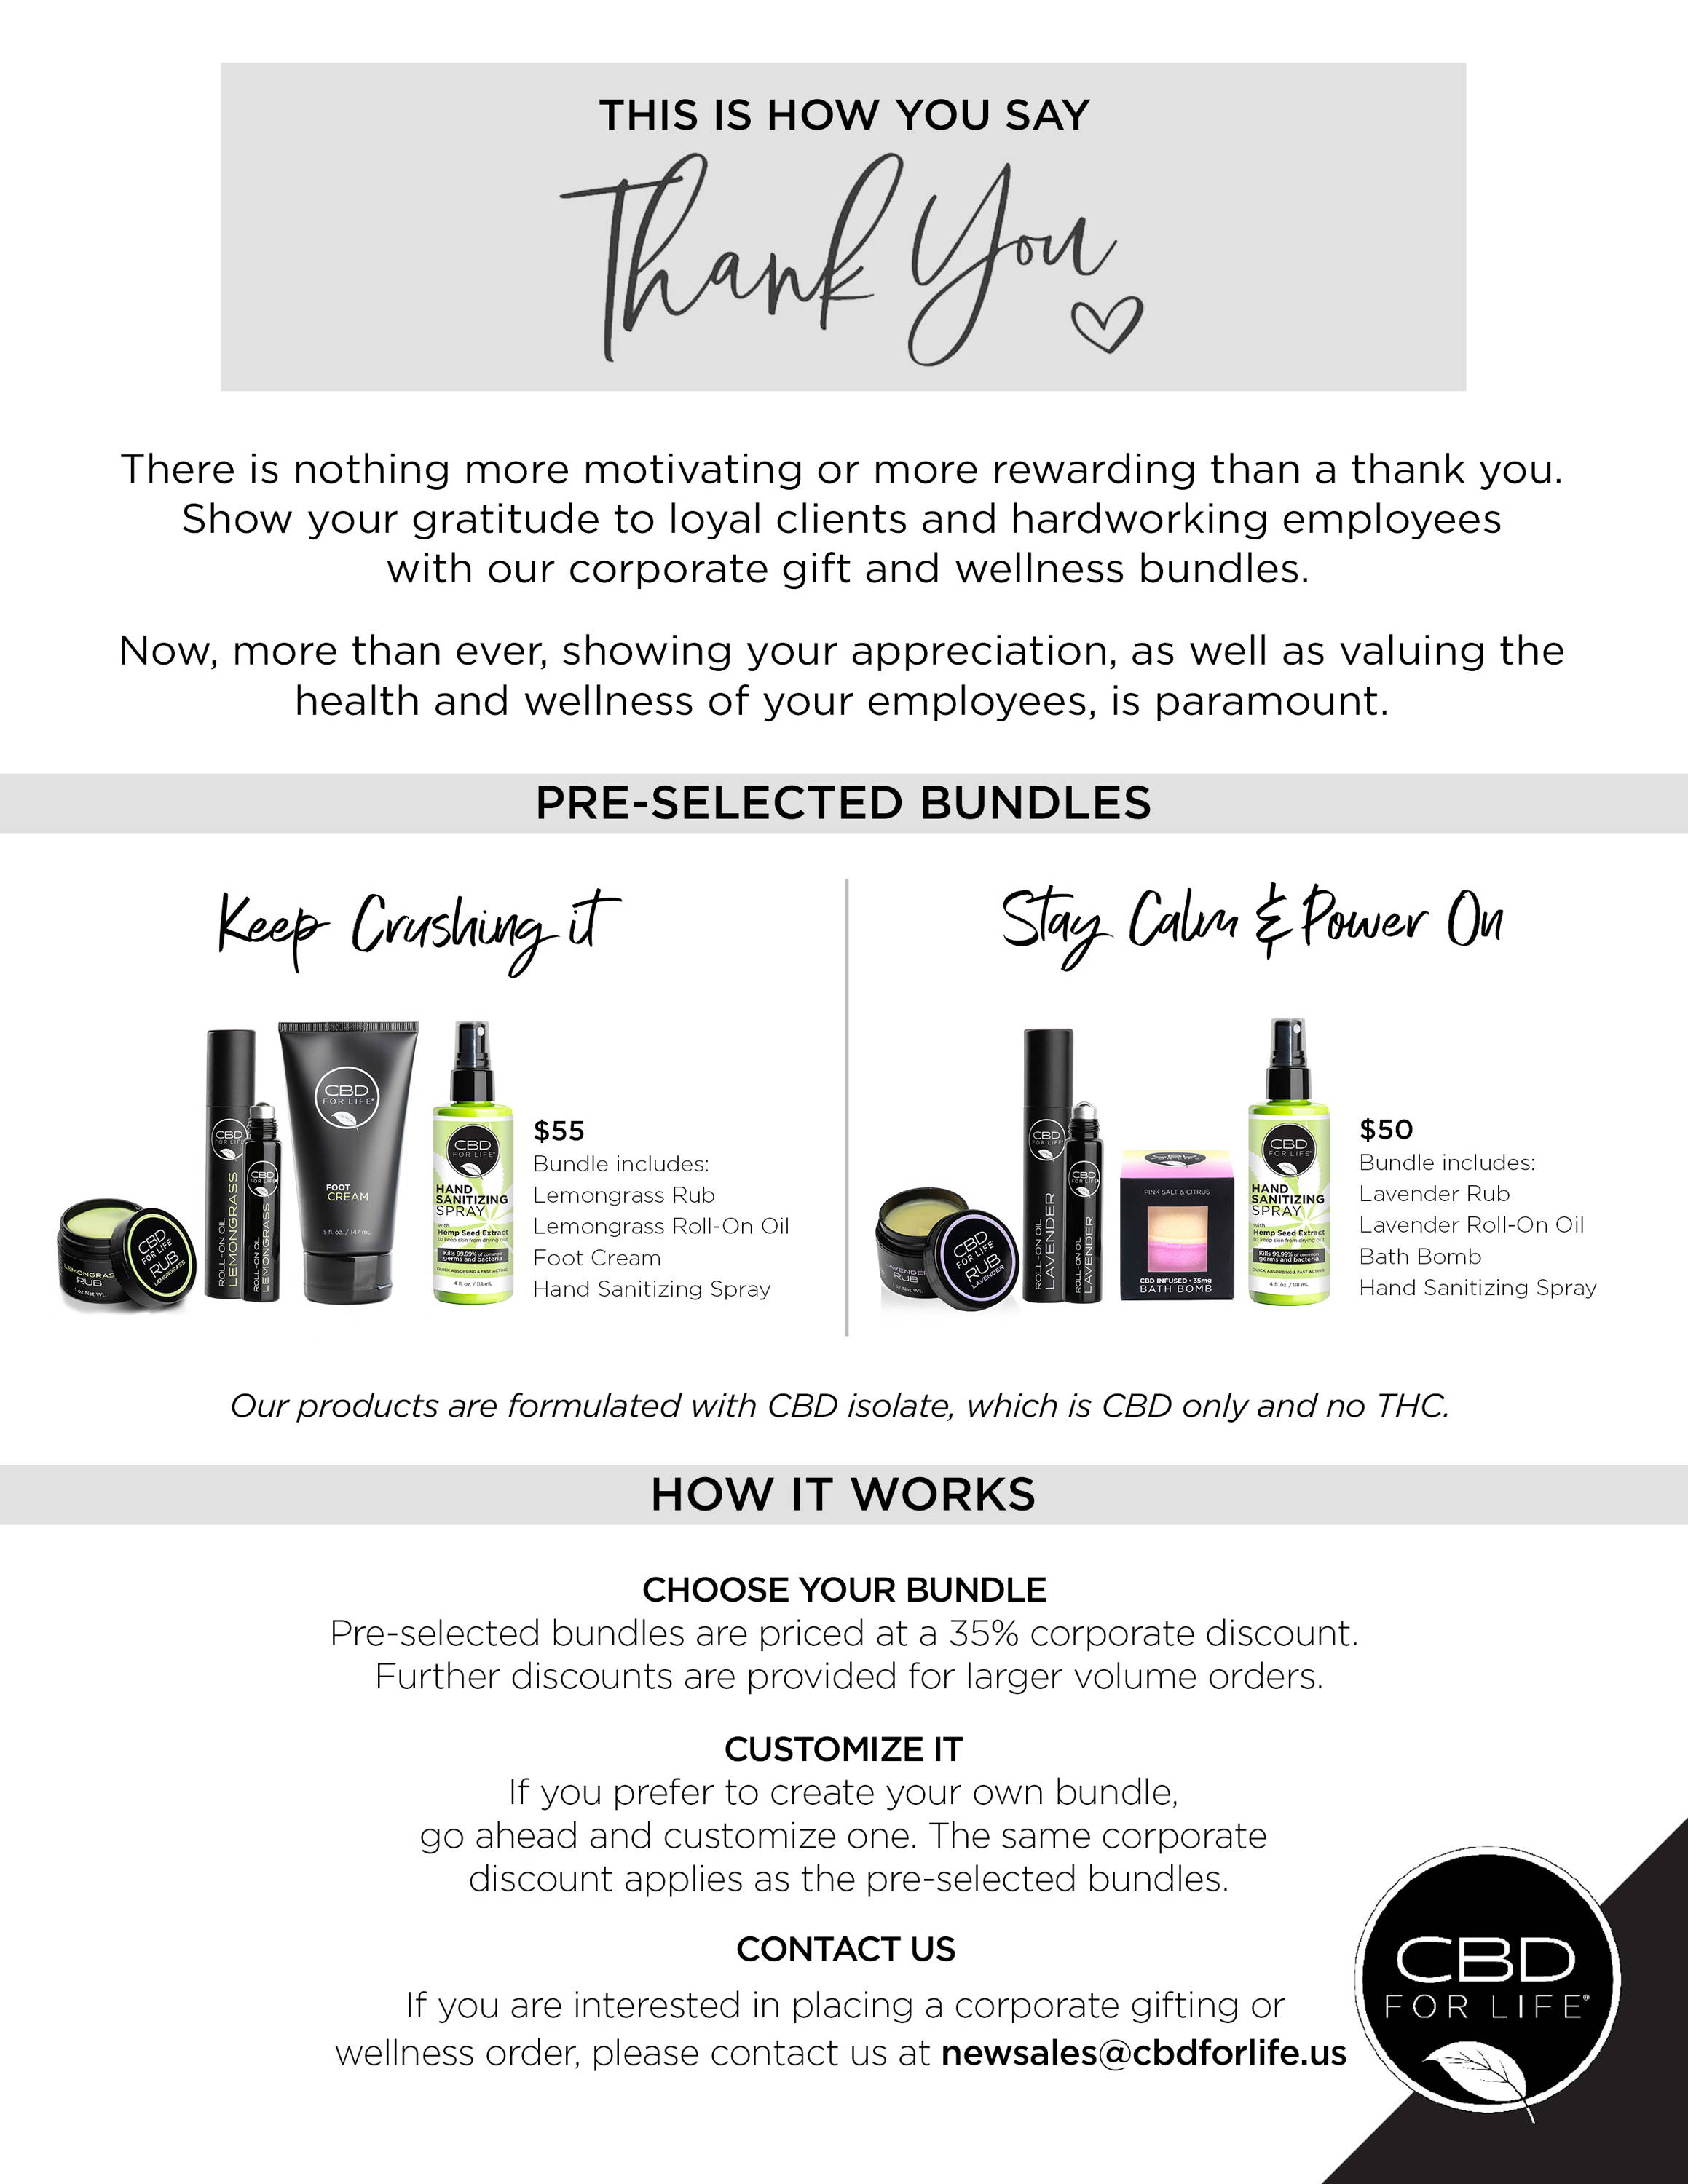 cbd for life corporate gifting and wellness bundles